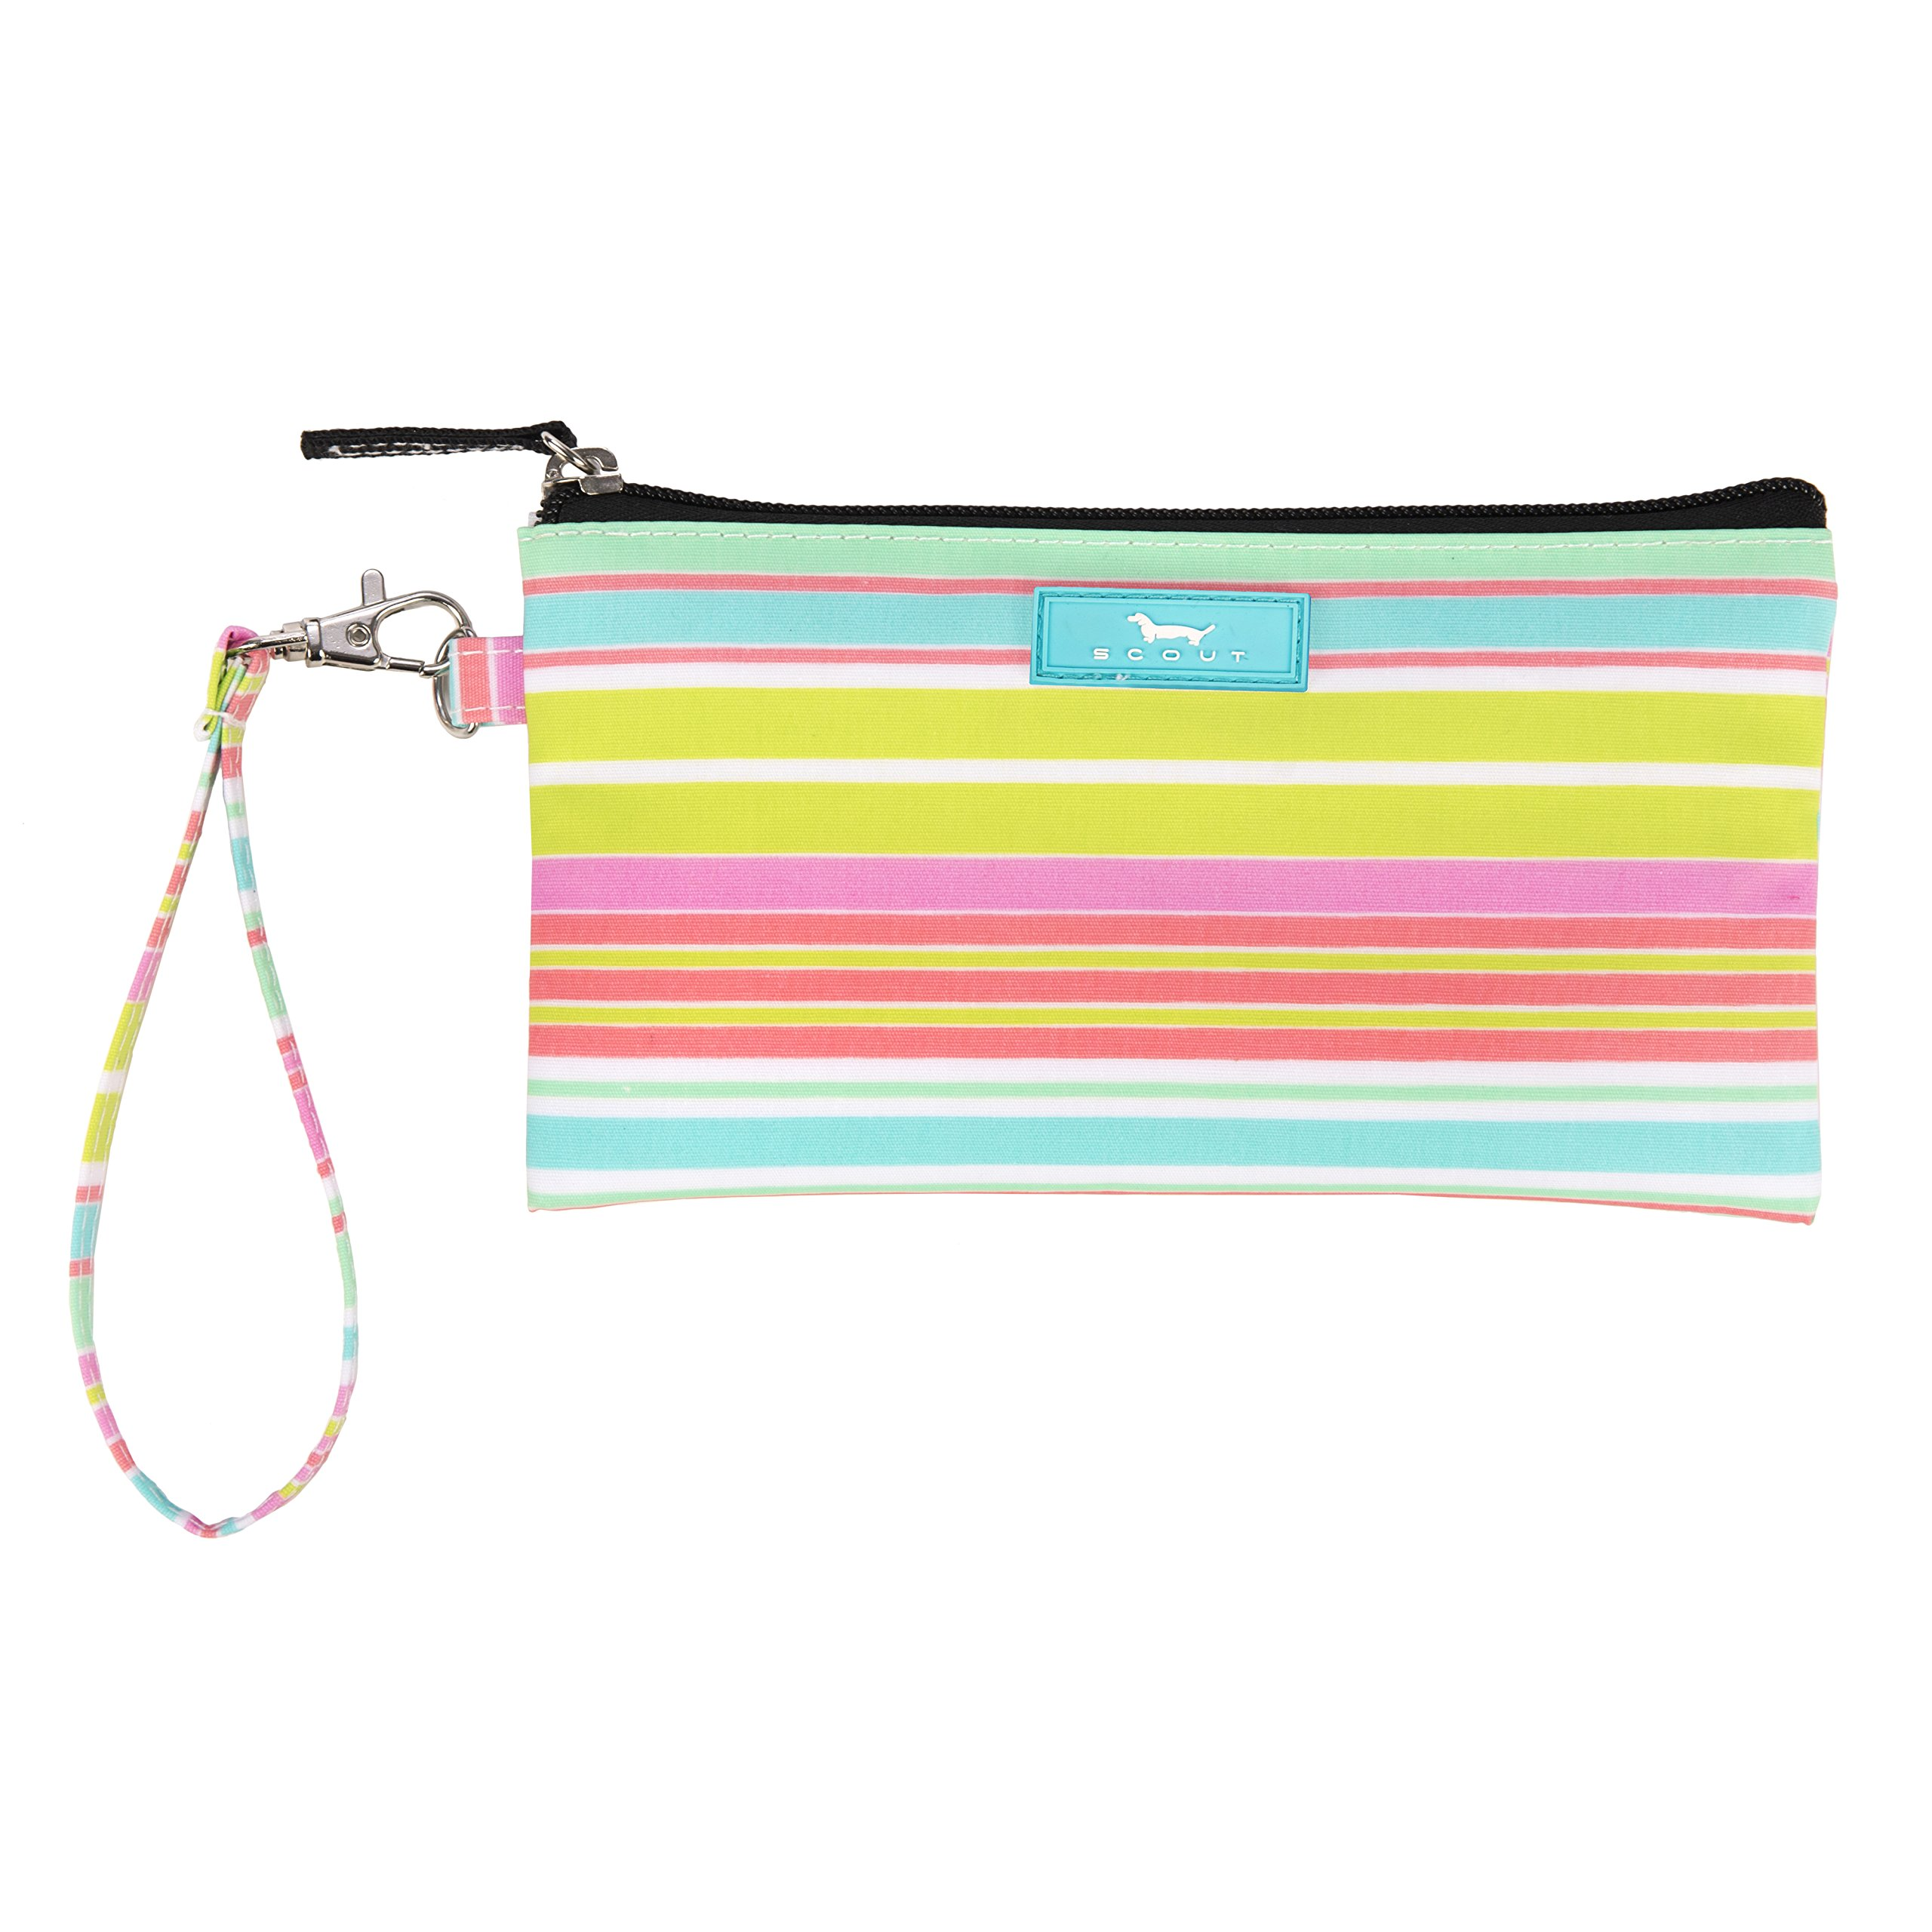 SCOUT Kate Wristlet, Essential Lightweight Clutch, Fits iPhone 6-8, Removable Strap, Water Resistant, Zips Closed, Sol Surfer by SCOUT (Image #1)